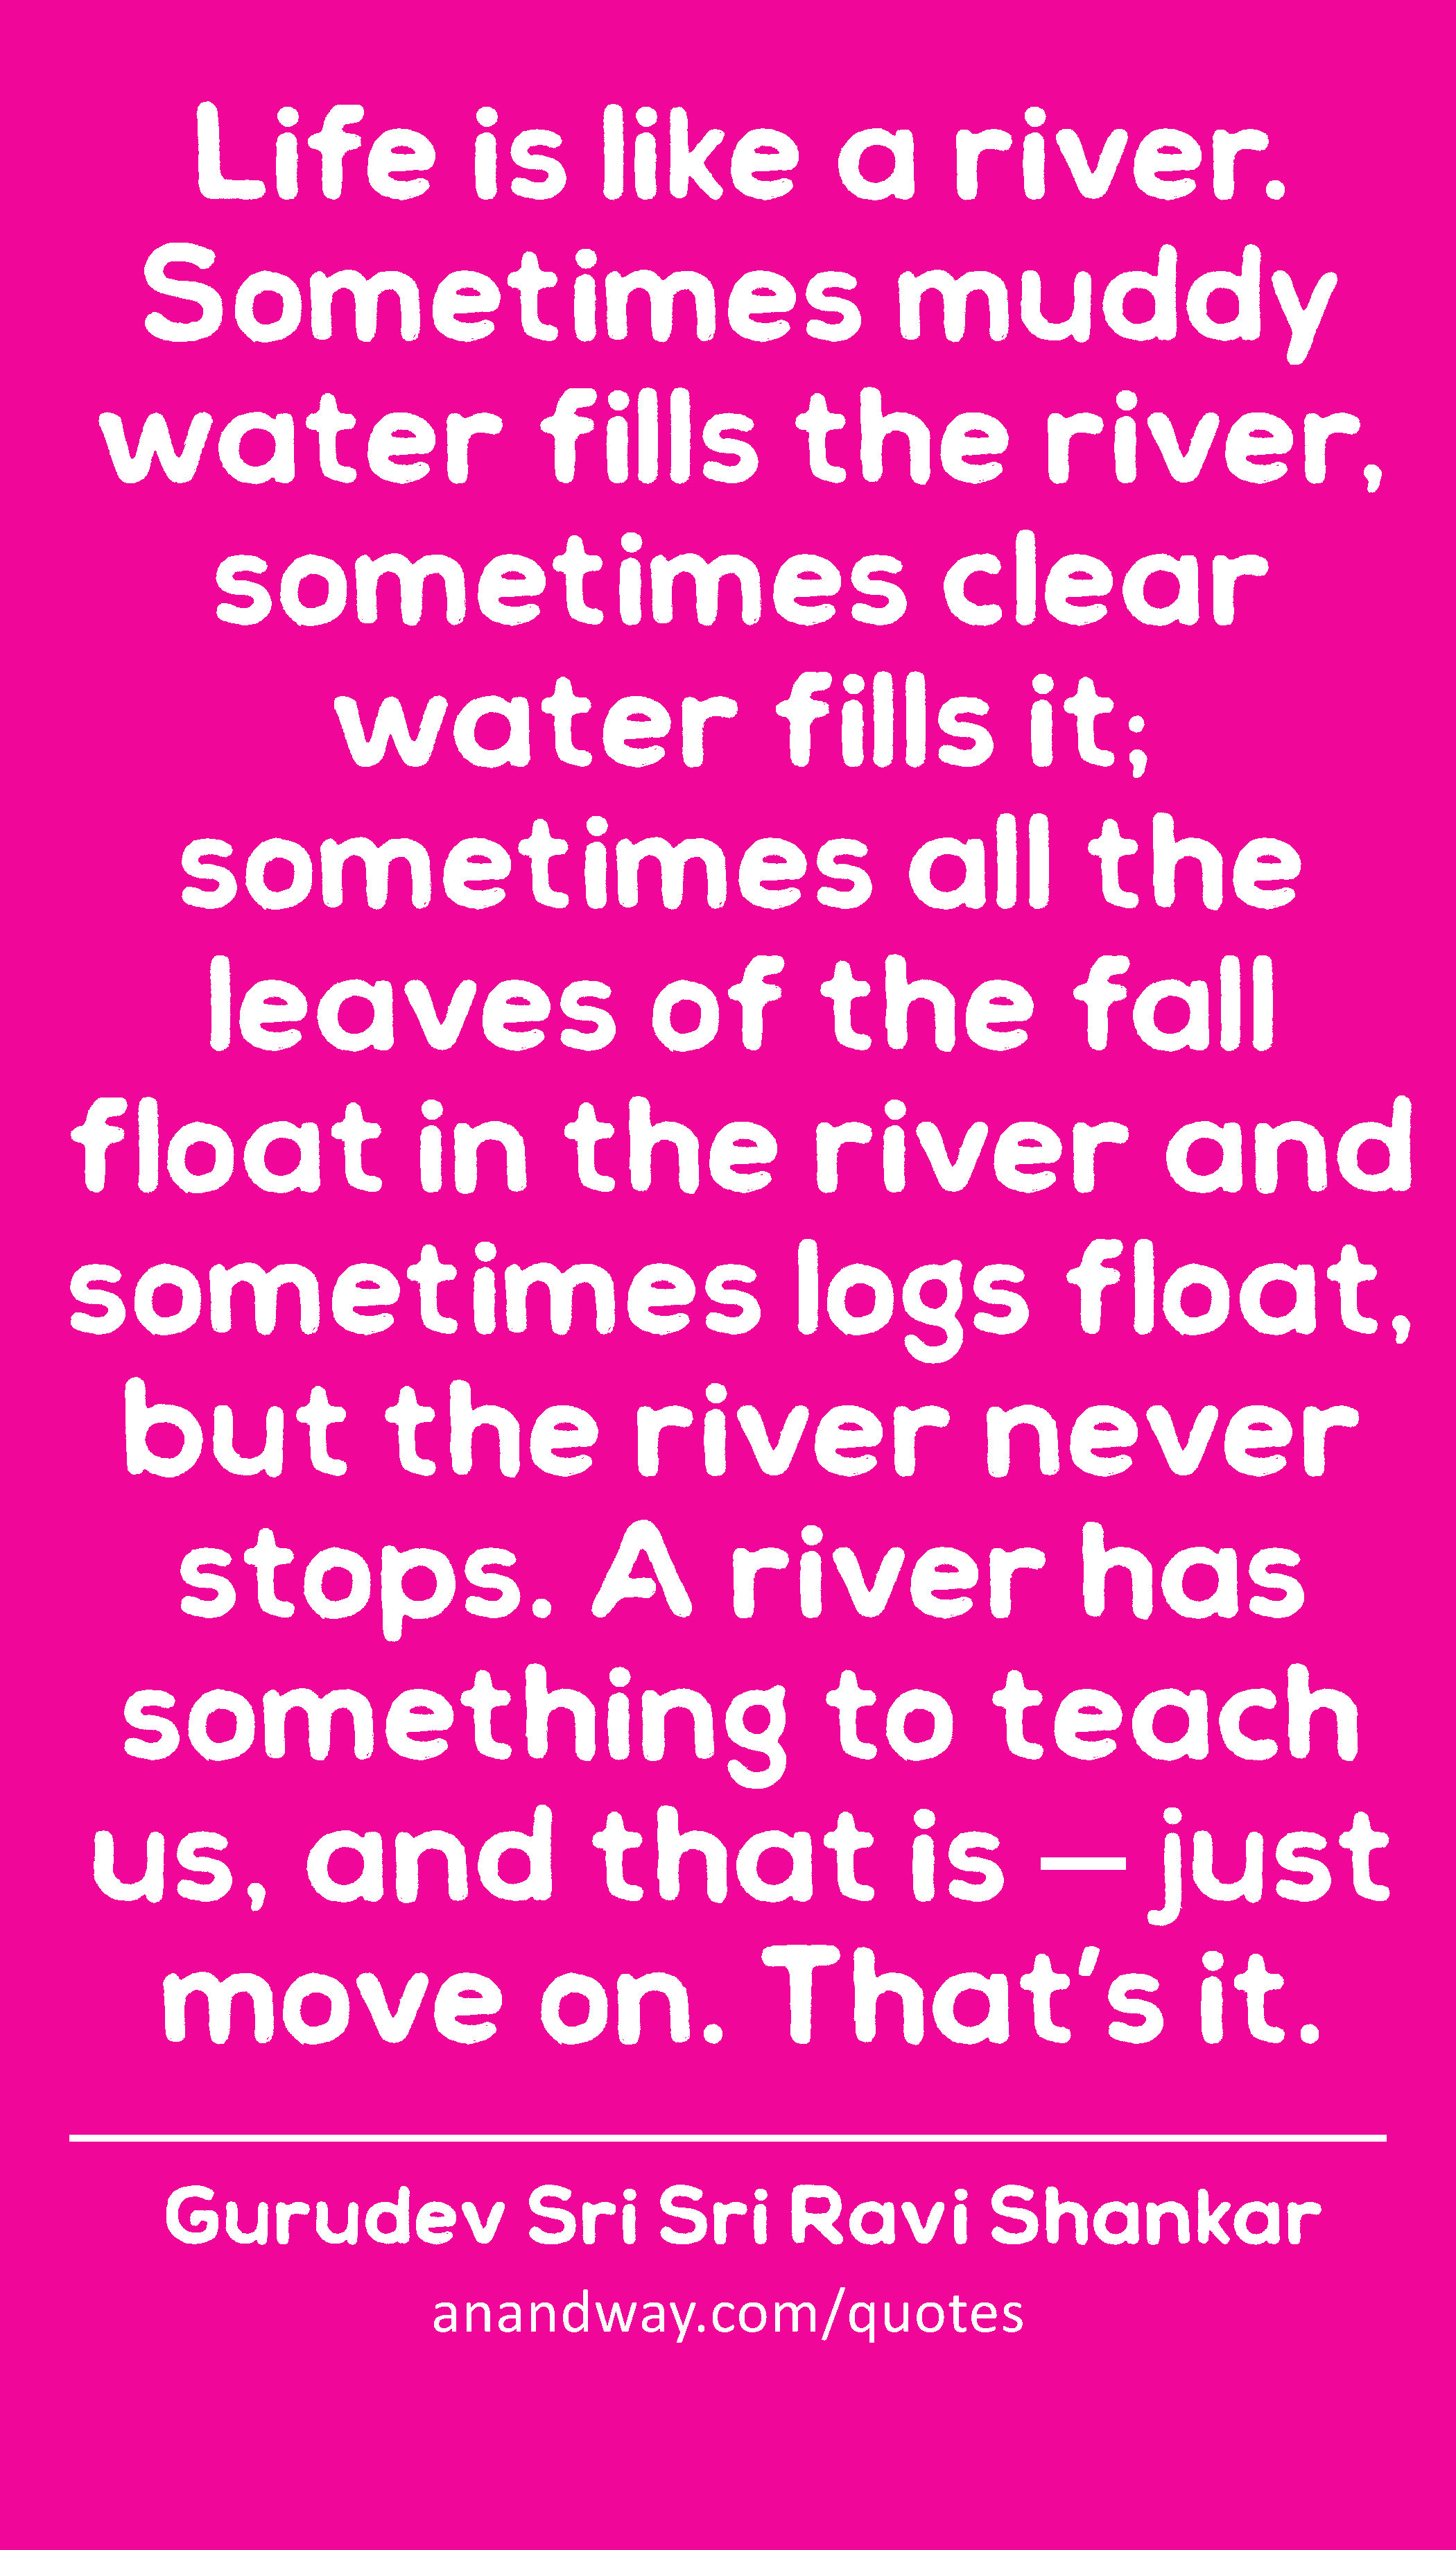 Life Like River Quote : river, quote, River., Sometimes, Muddy, Water, Fills, The...by, Gurudev, Shankar